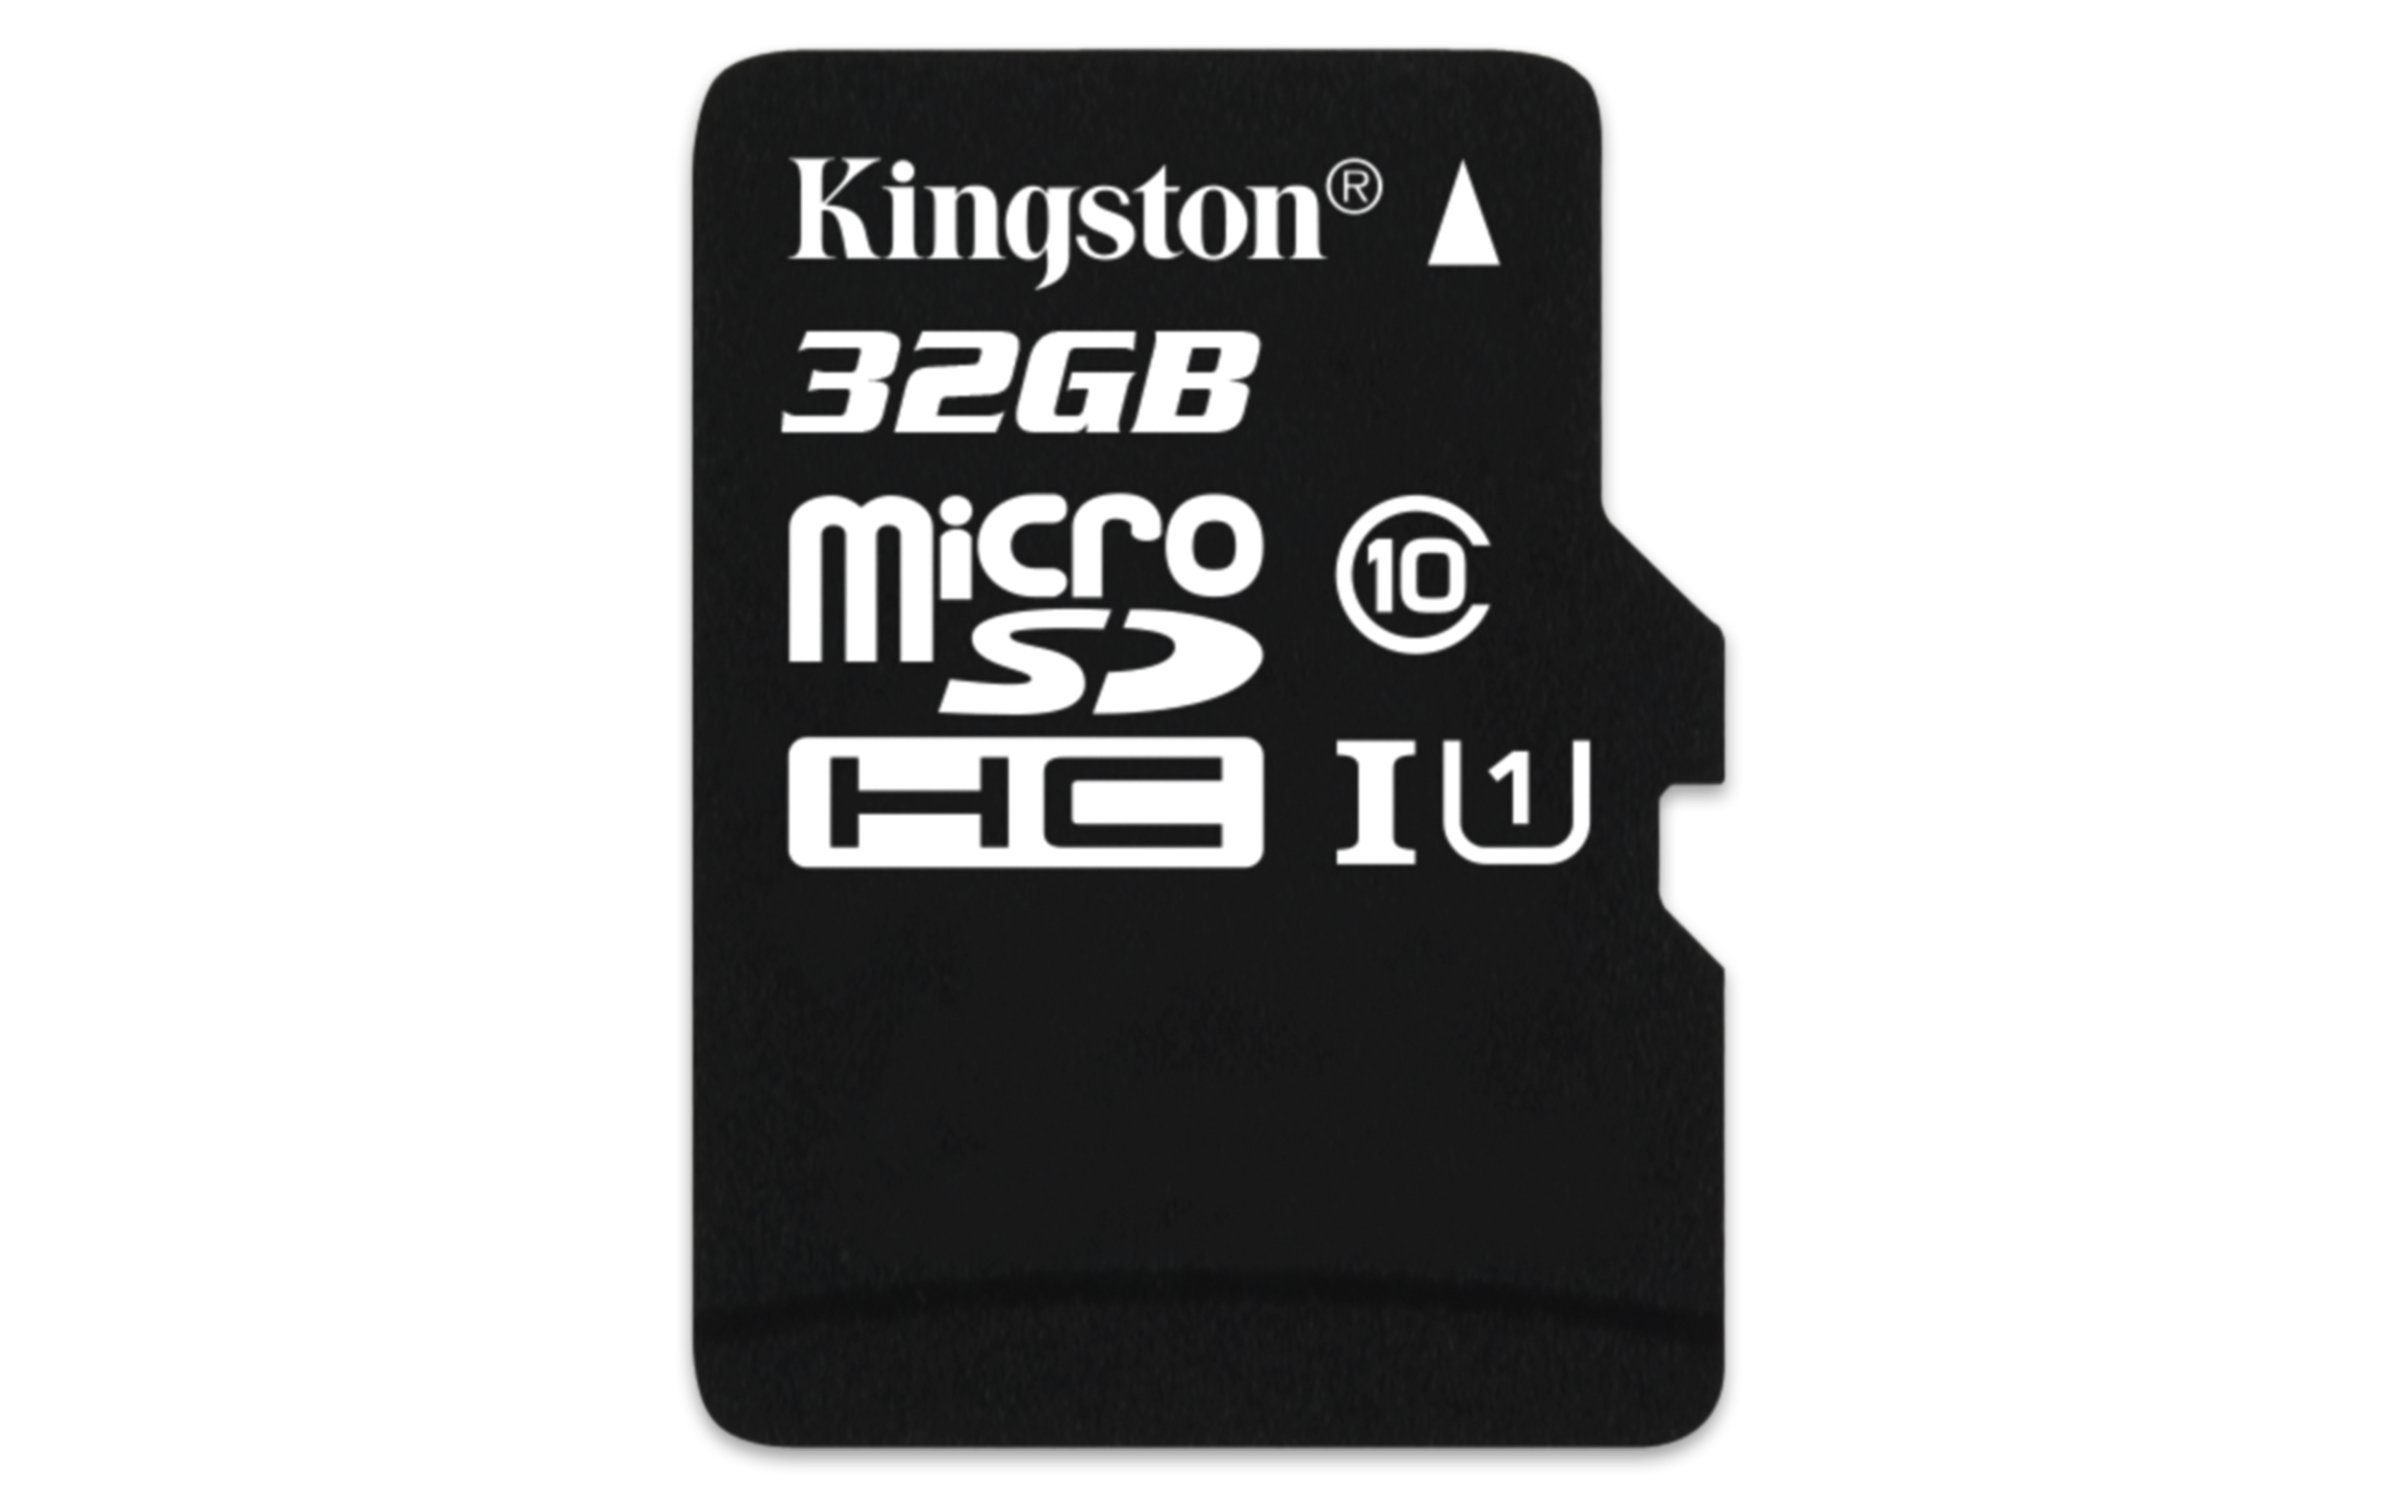 Kingston Digital 32gb Micro Sdhc Uhs-i Class 10 Industrial.